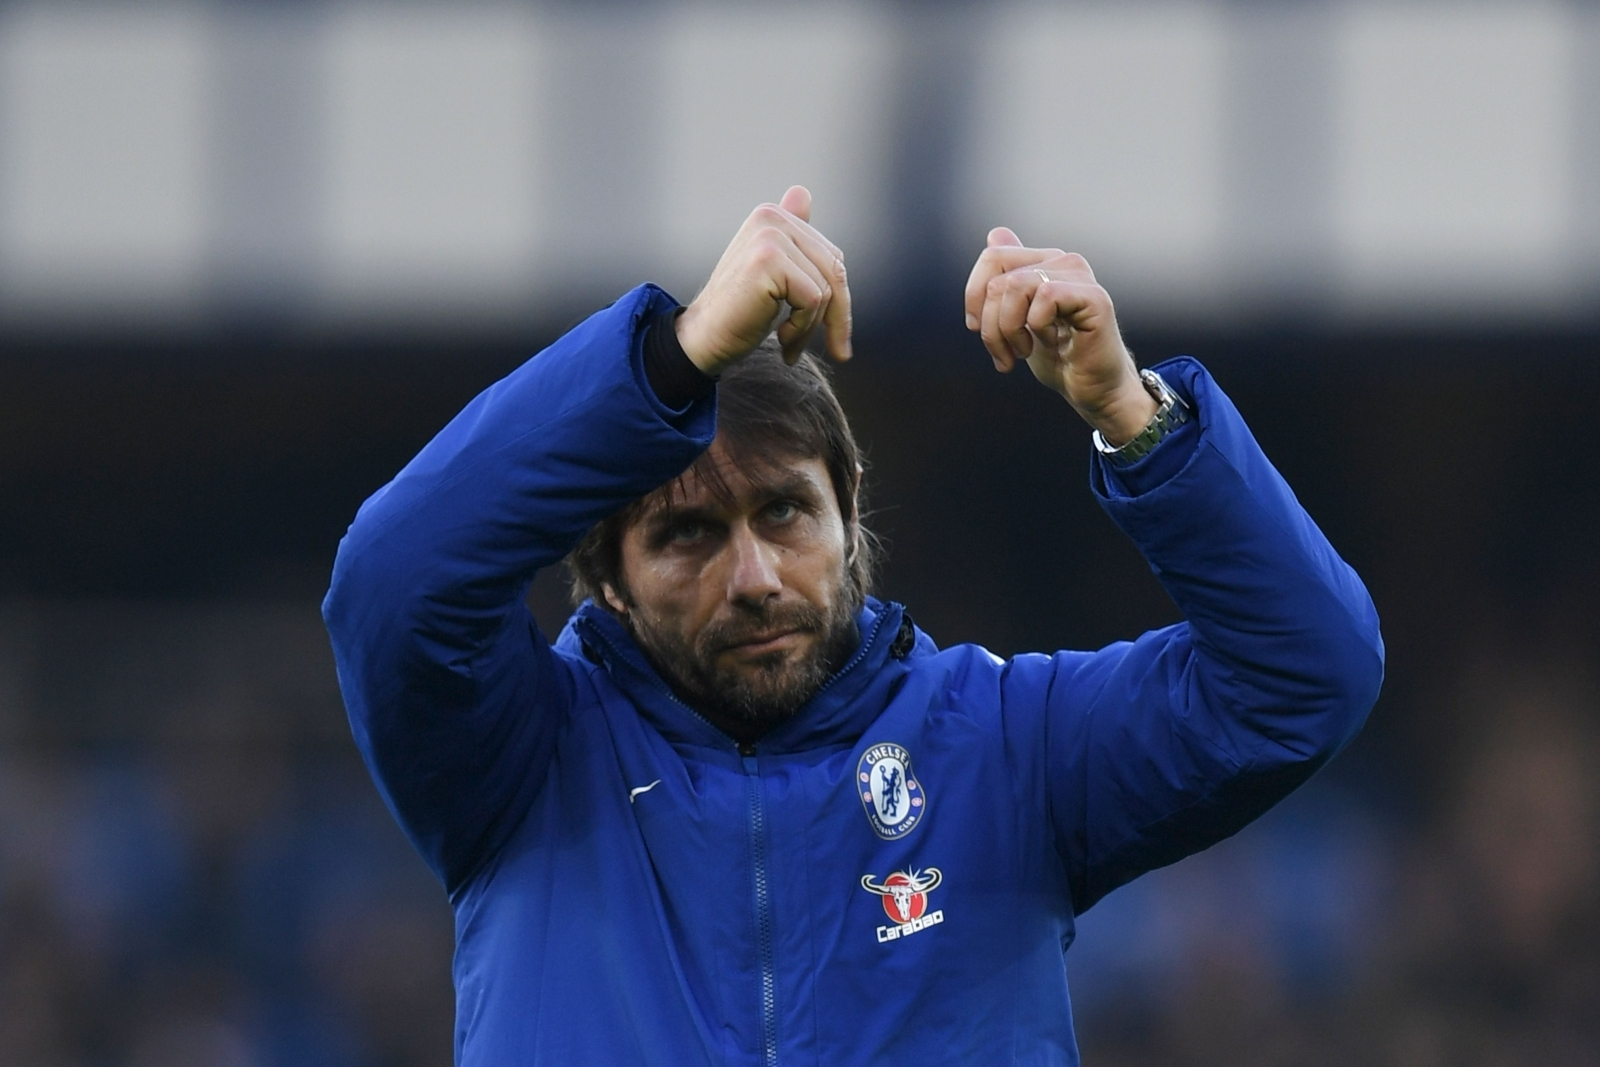 Antonio Conte praises Chelsea players after